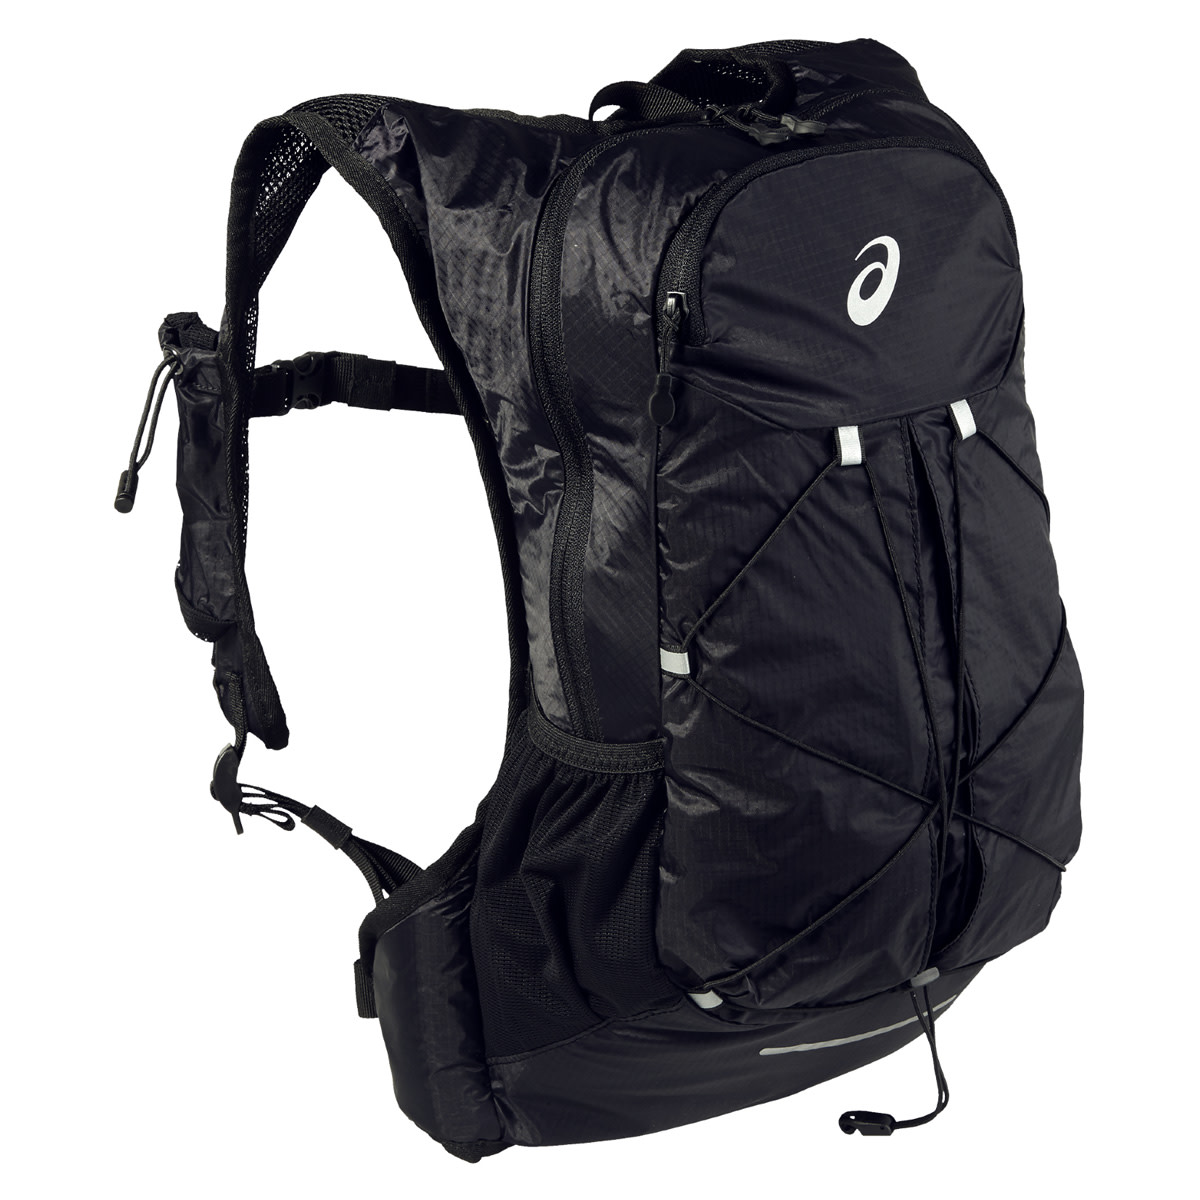 Lightweight Running À Noir Backpack Dos Asics Sac SGULVzqMp